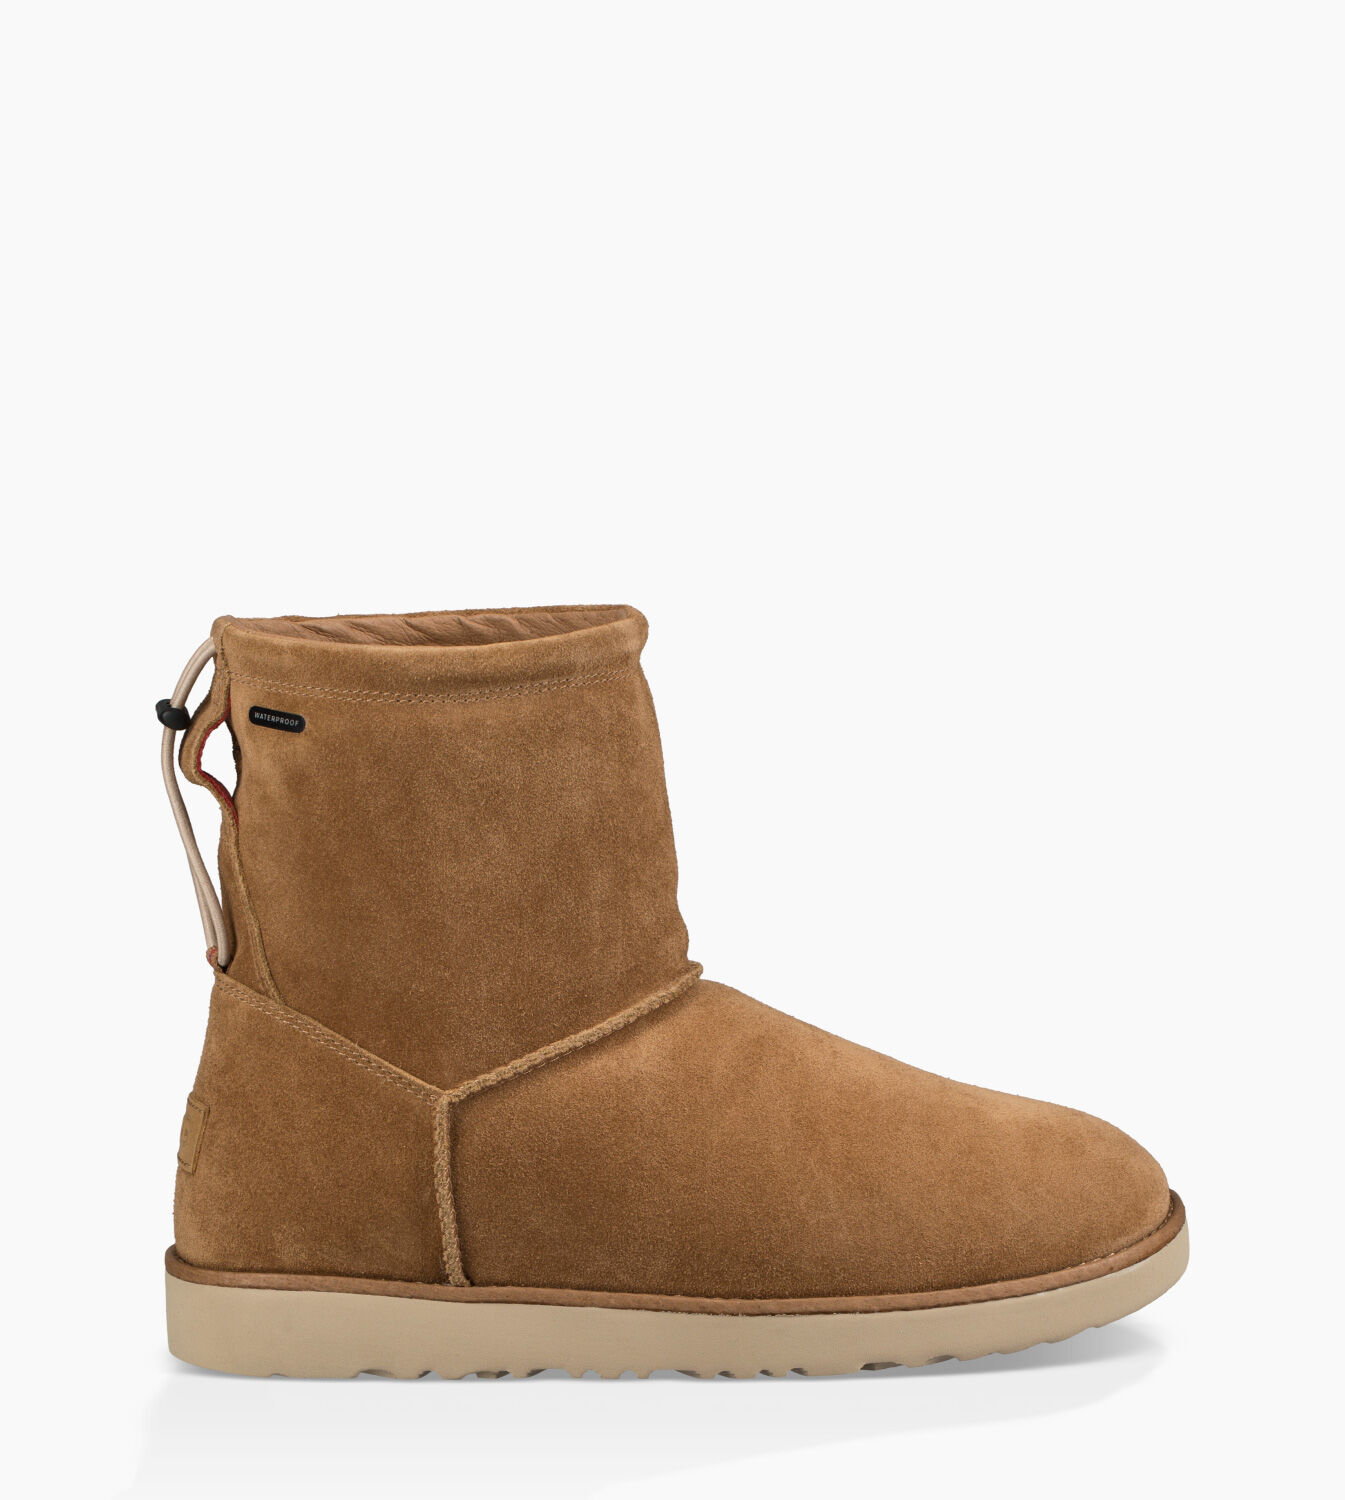 UGG Classic Toggle Waterproof Suede Boots 6TfPdGf